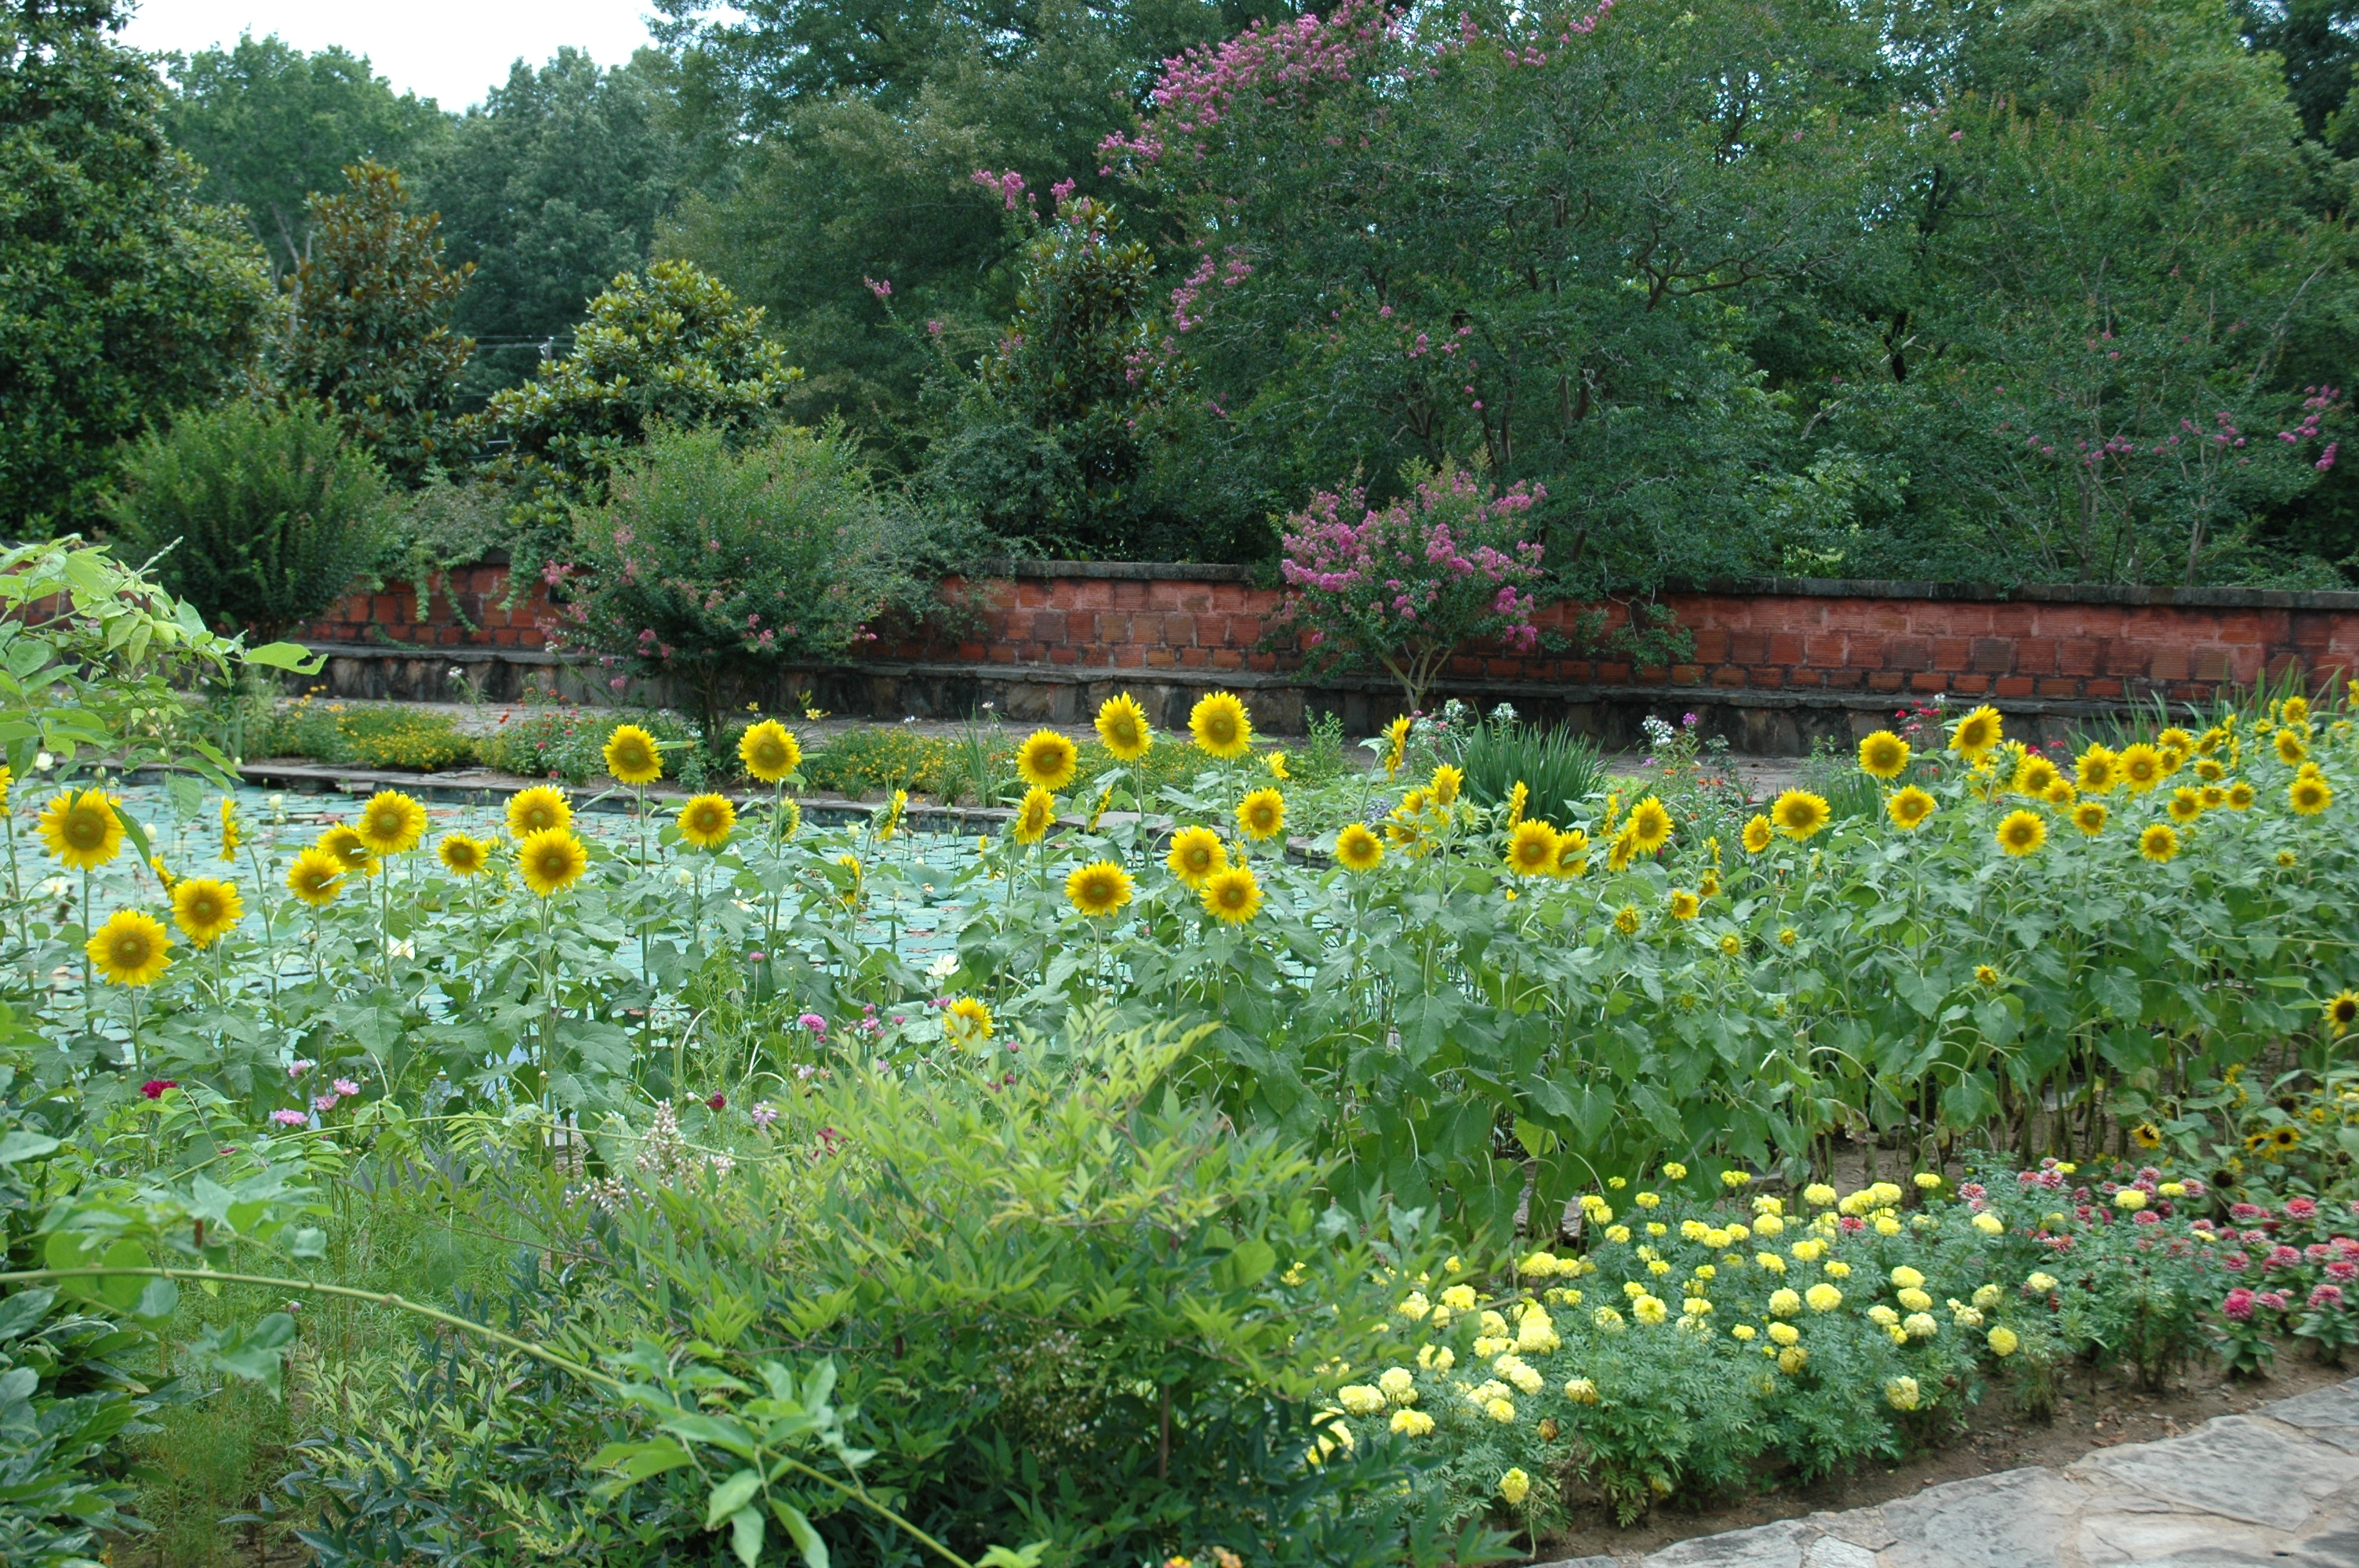 https://alabama-travel.s3.amazonaws.com/partners-uploads/photo/image/5949865e7373907f23000077/lower_pool_with_sunflowers2010.jpg